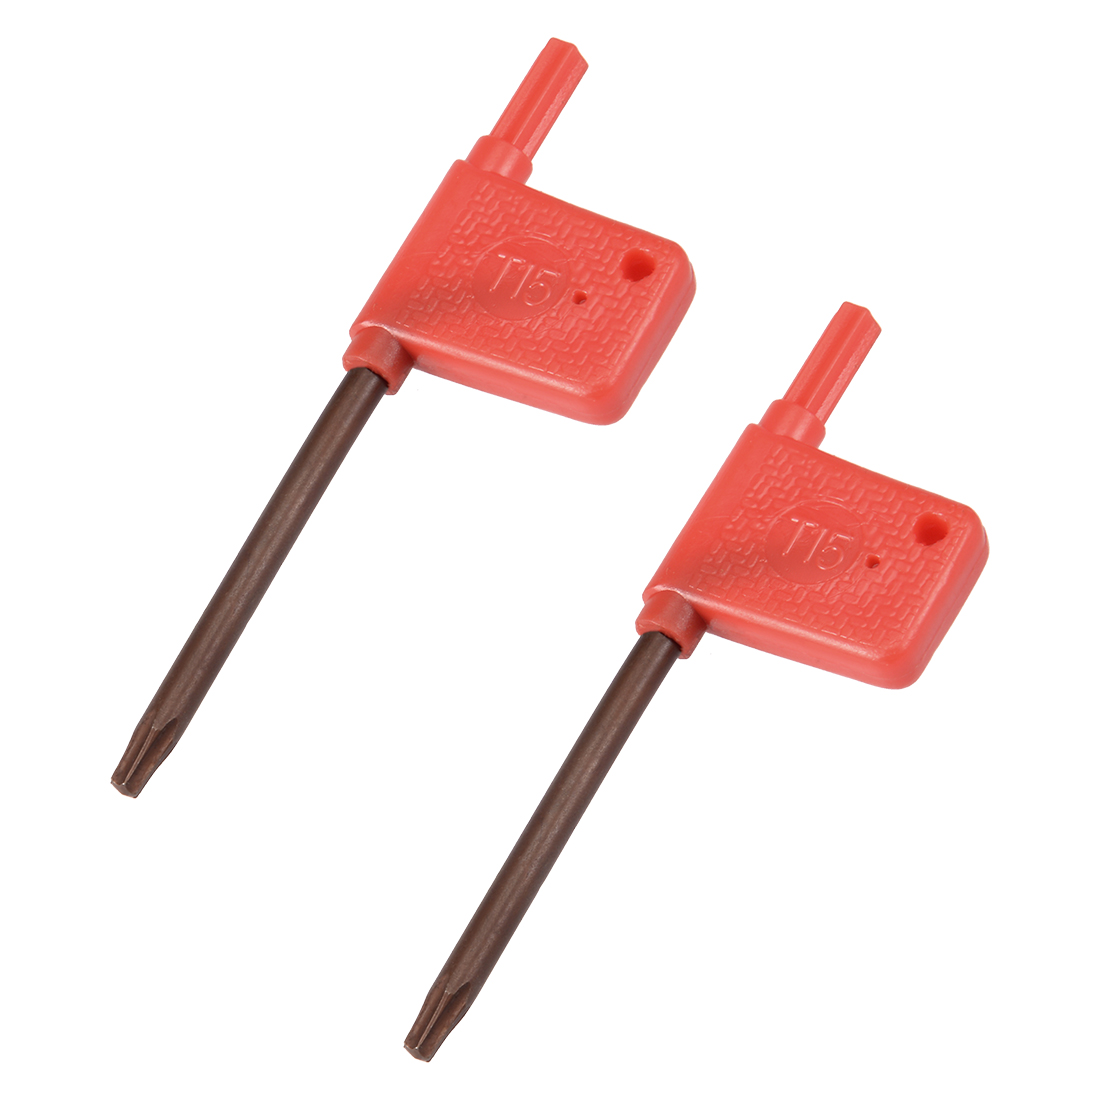 2PCS T15 S2 Flag Type Handle Driver Torx Key Wrench Spanner Screwdriver